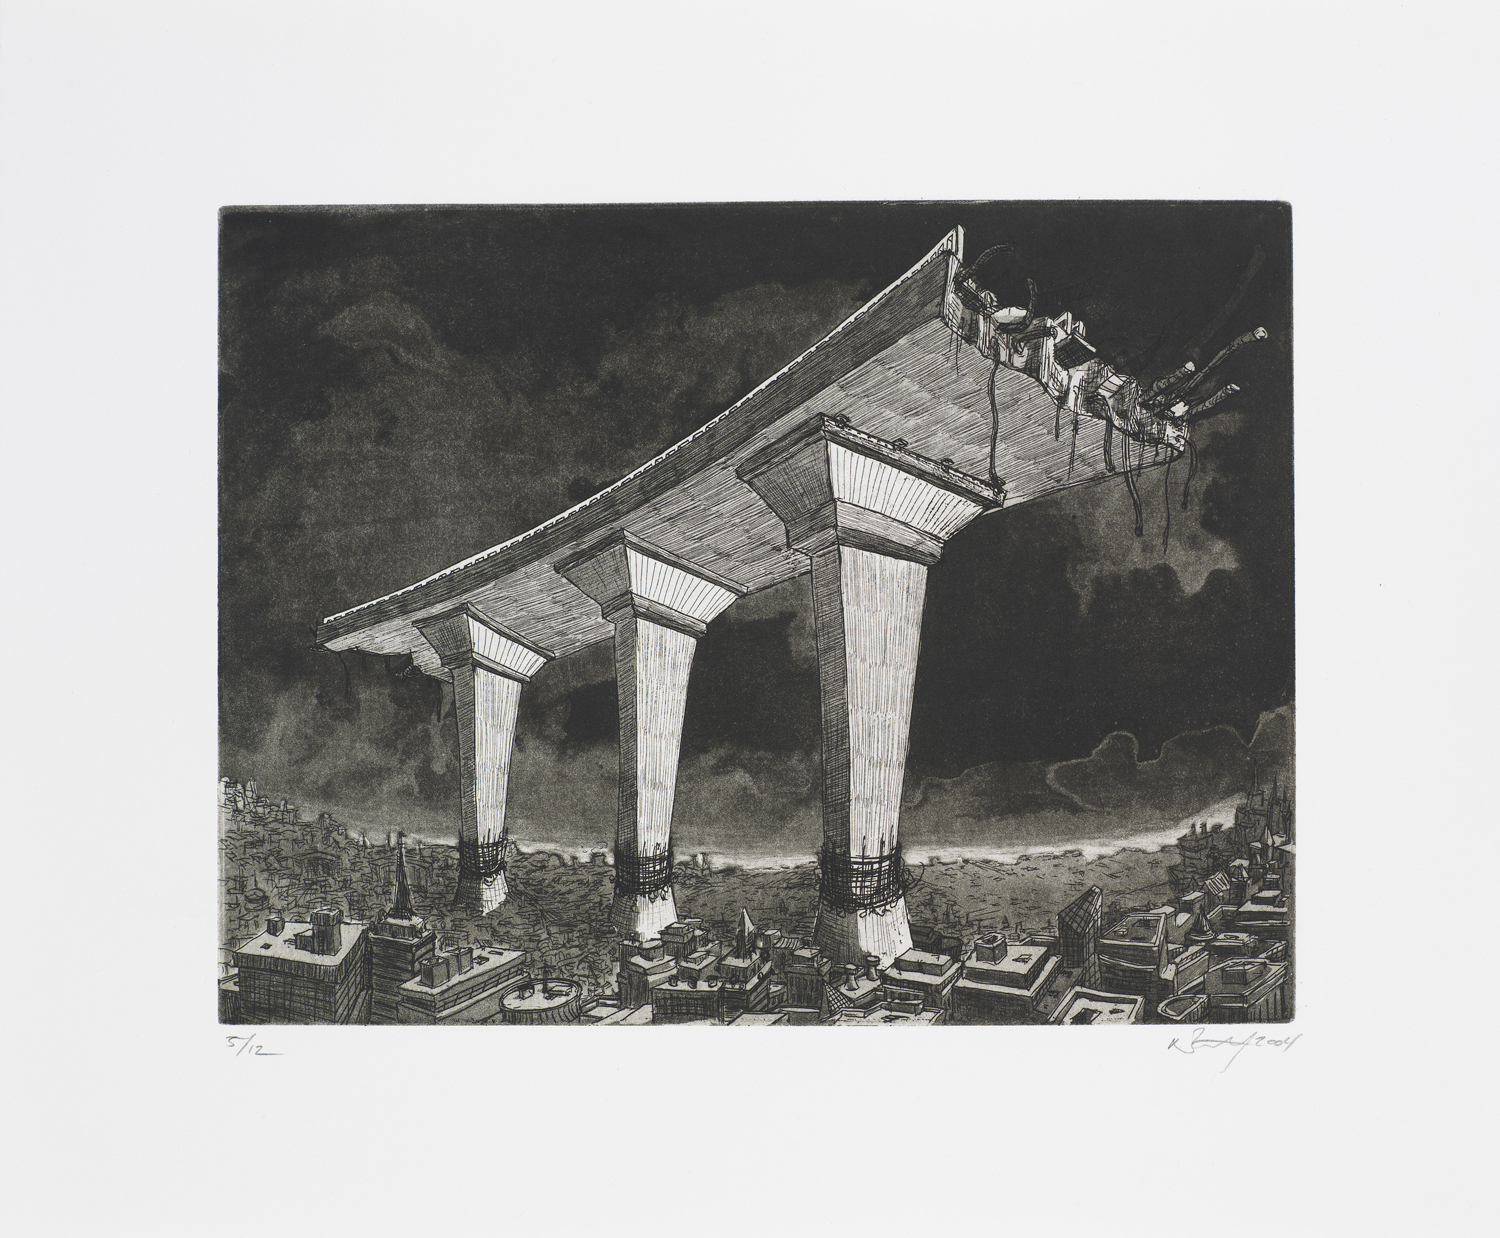 """Monument II (Road)  2004; Intaglio on paper; 12"""" x 14.5""""; Self published; Edition of 12"""